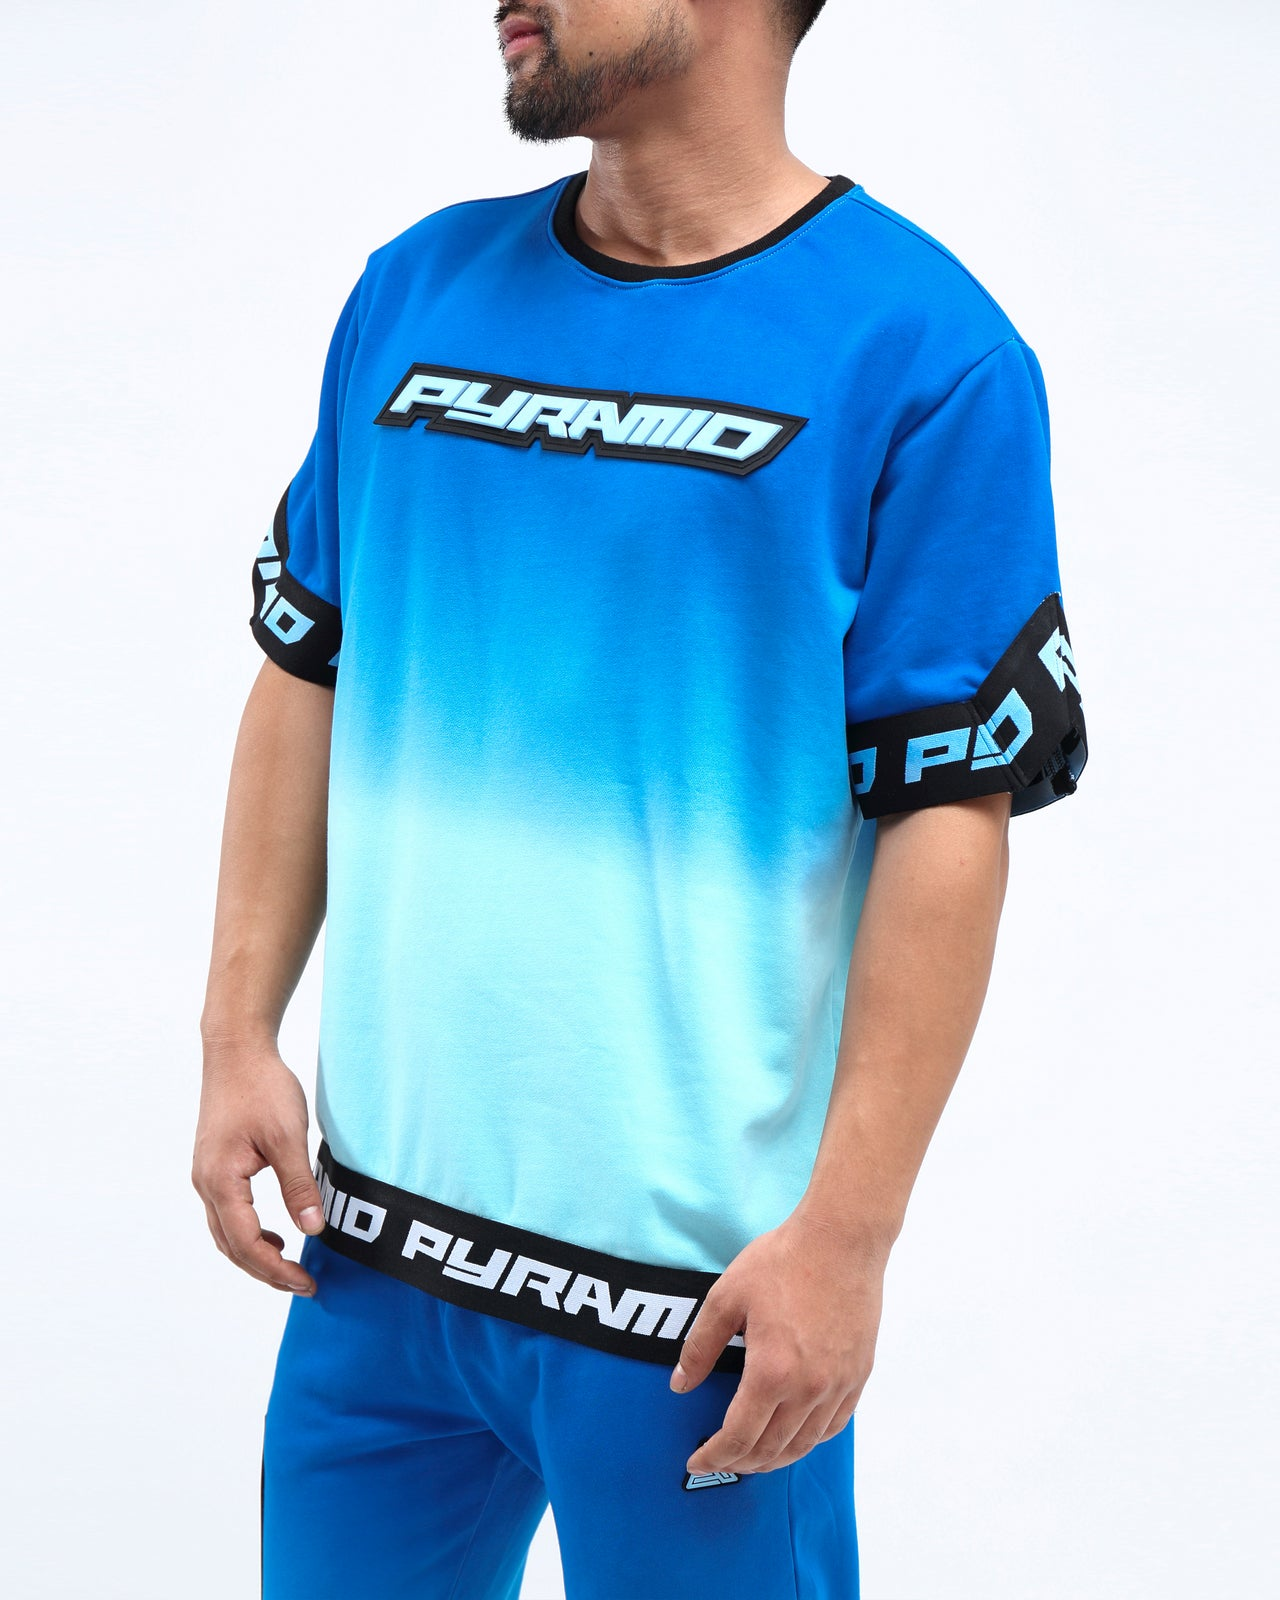 DIP DYE PASTEL SHOOTING JERSEY - Color: BLUE